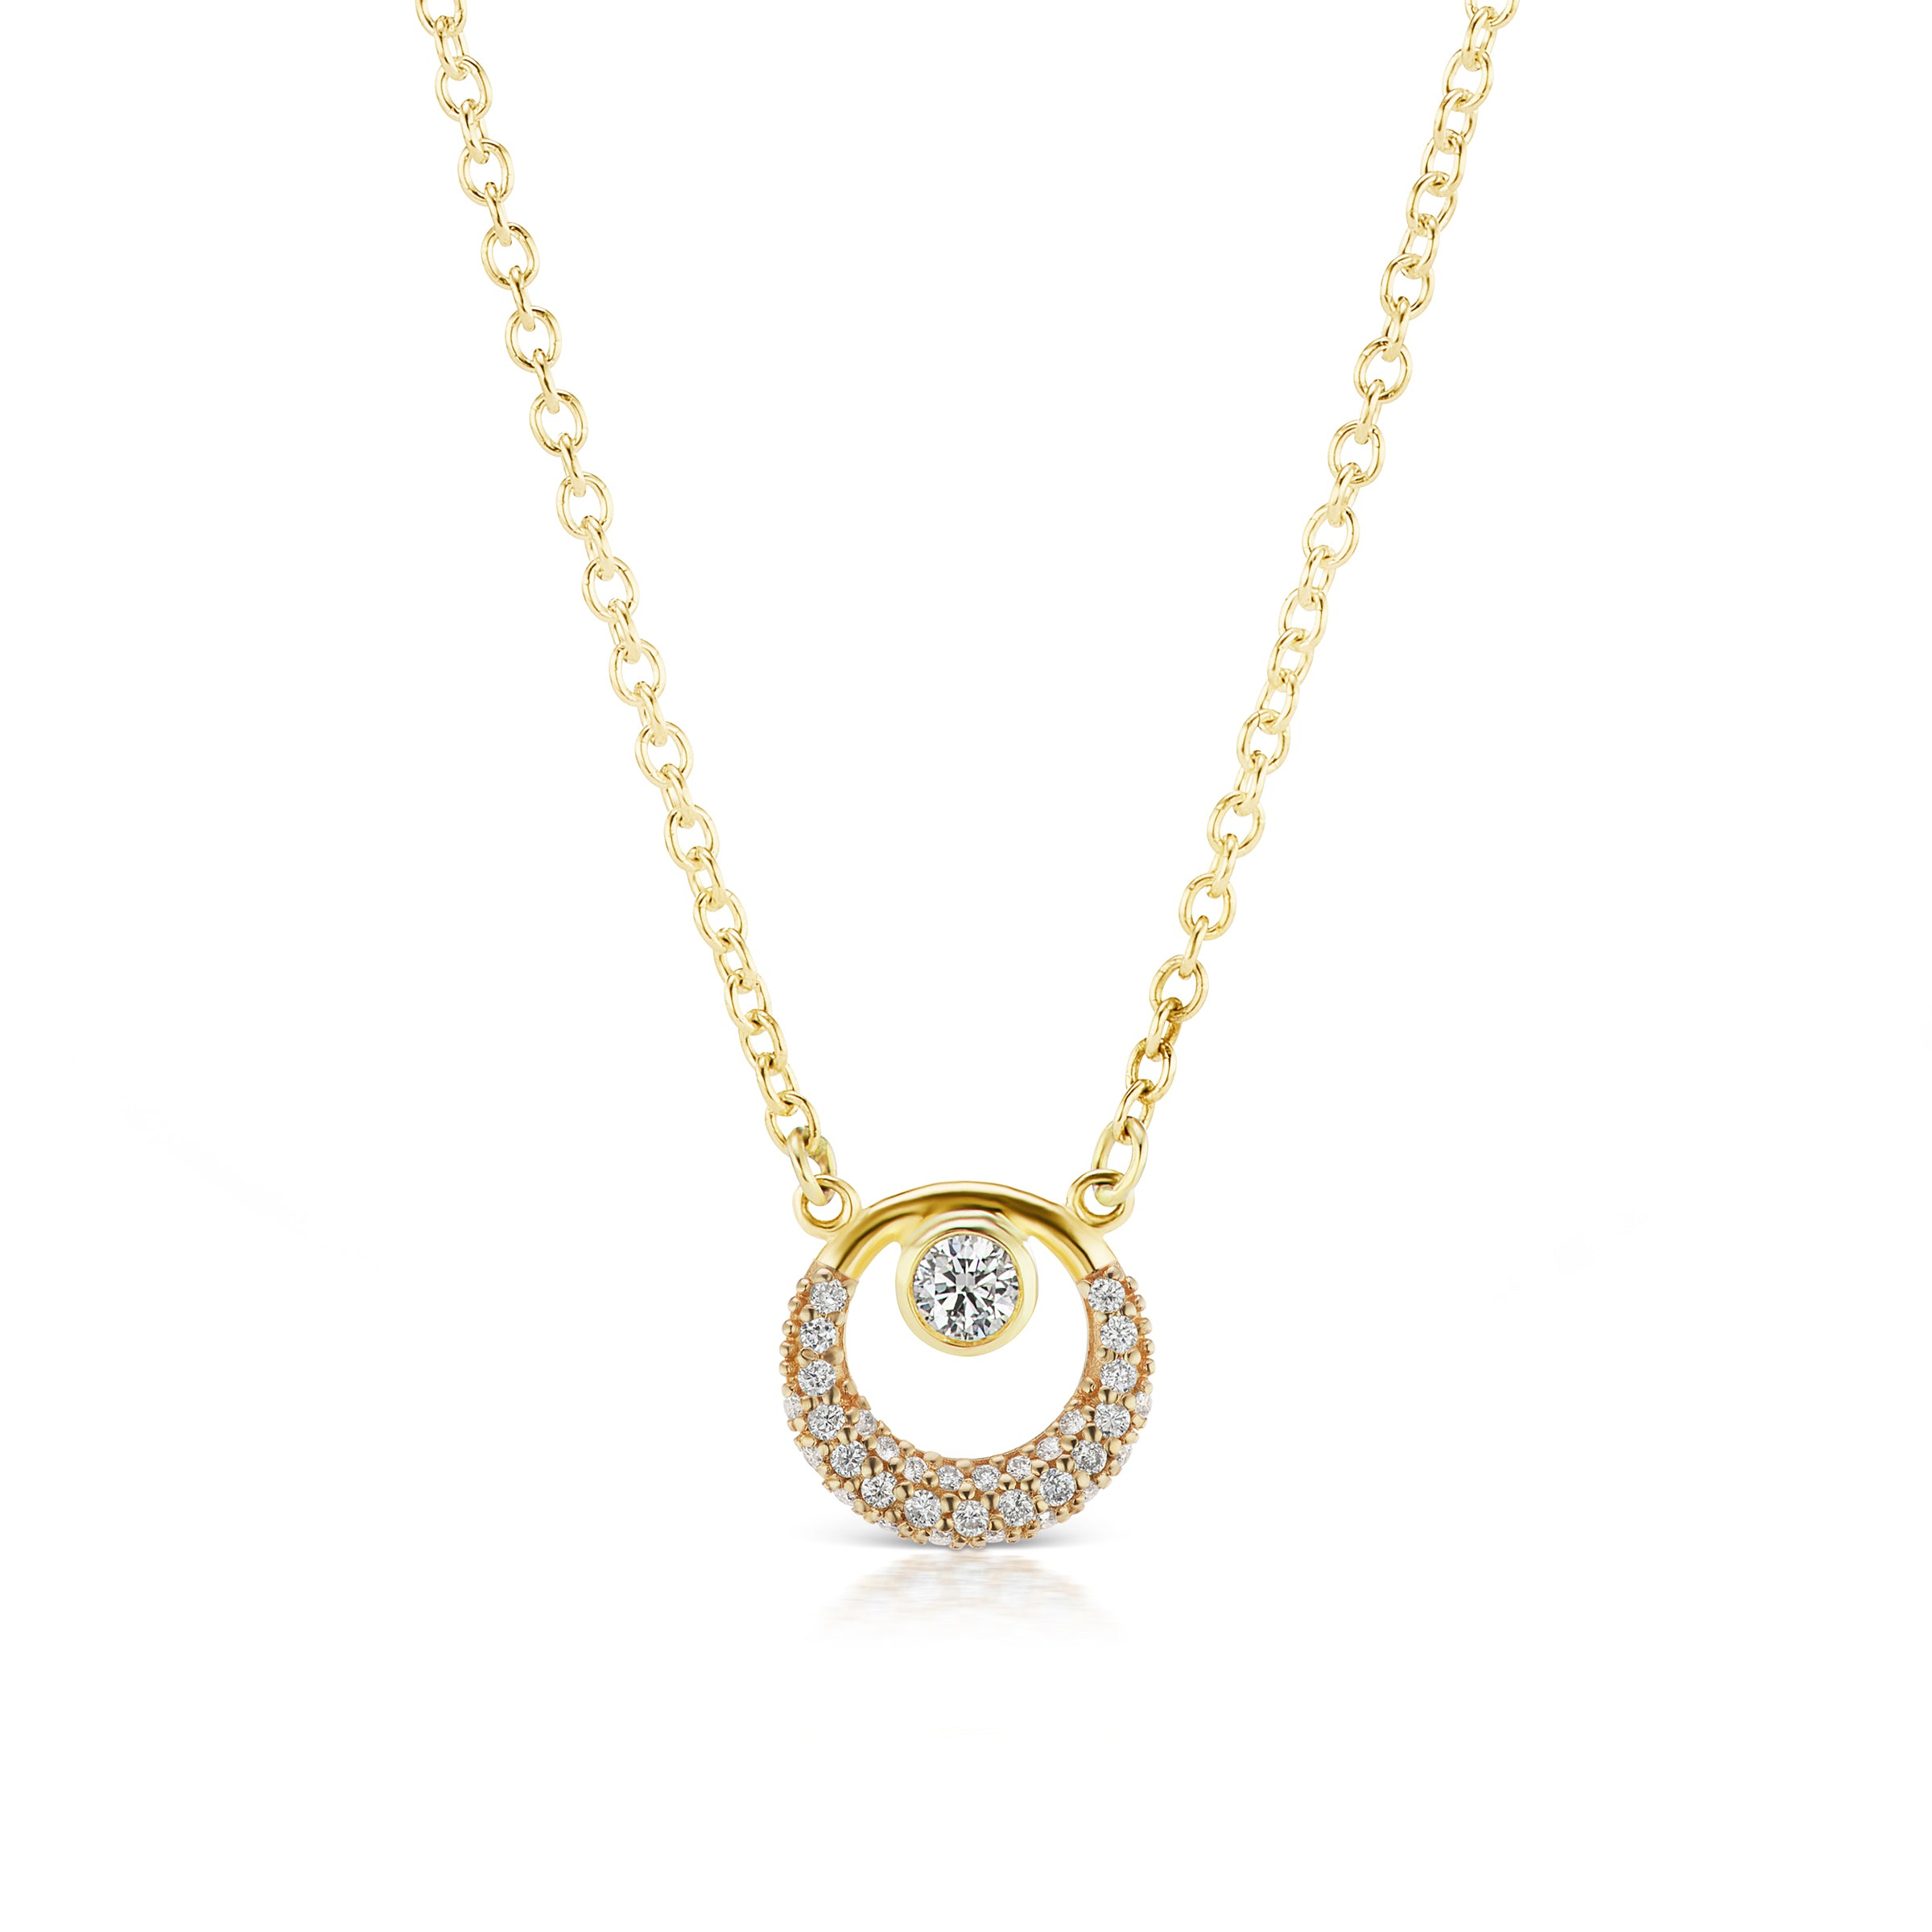 The Gold Pave Everyday Diamond Necklace